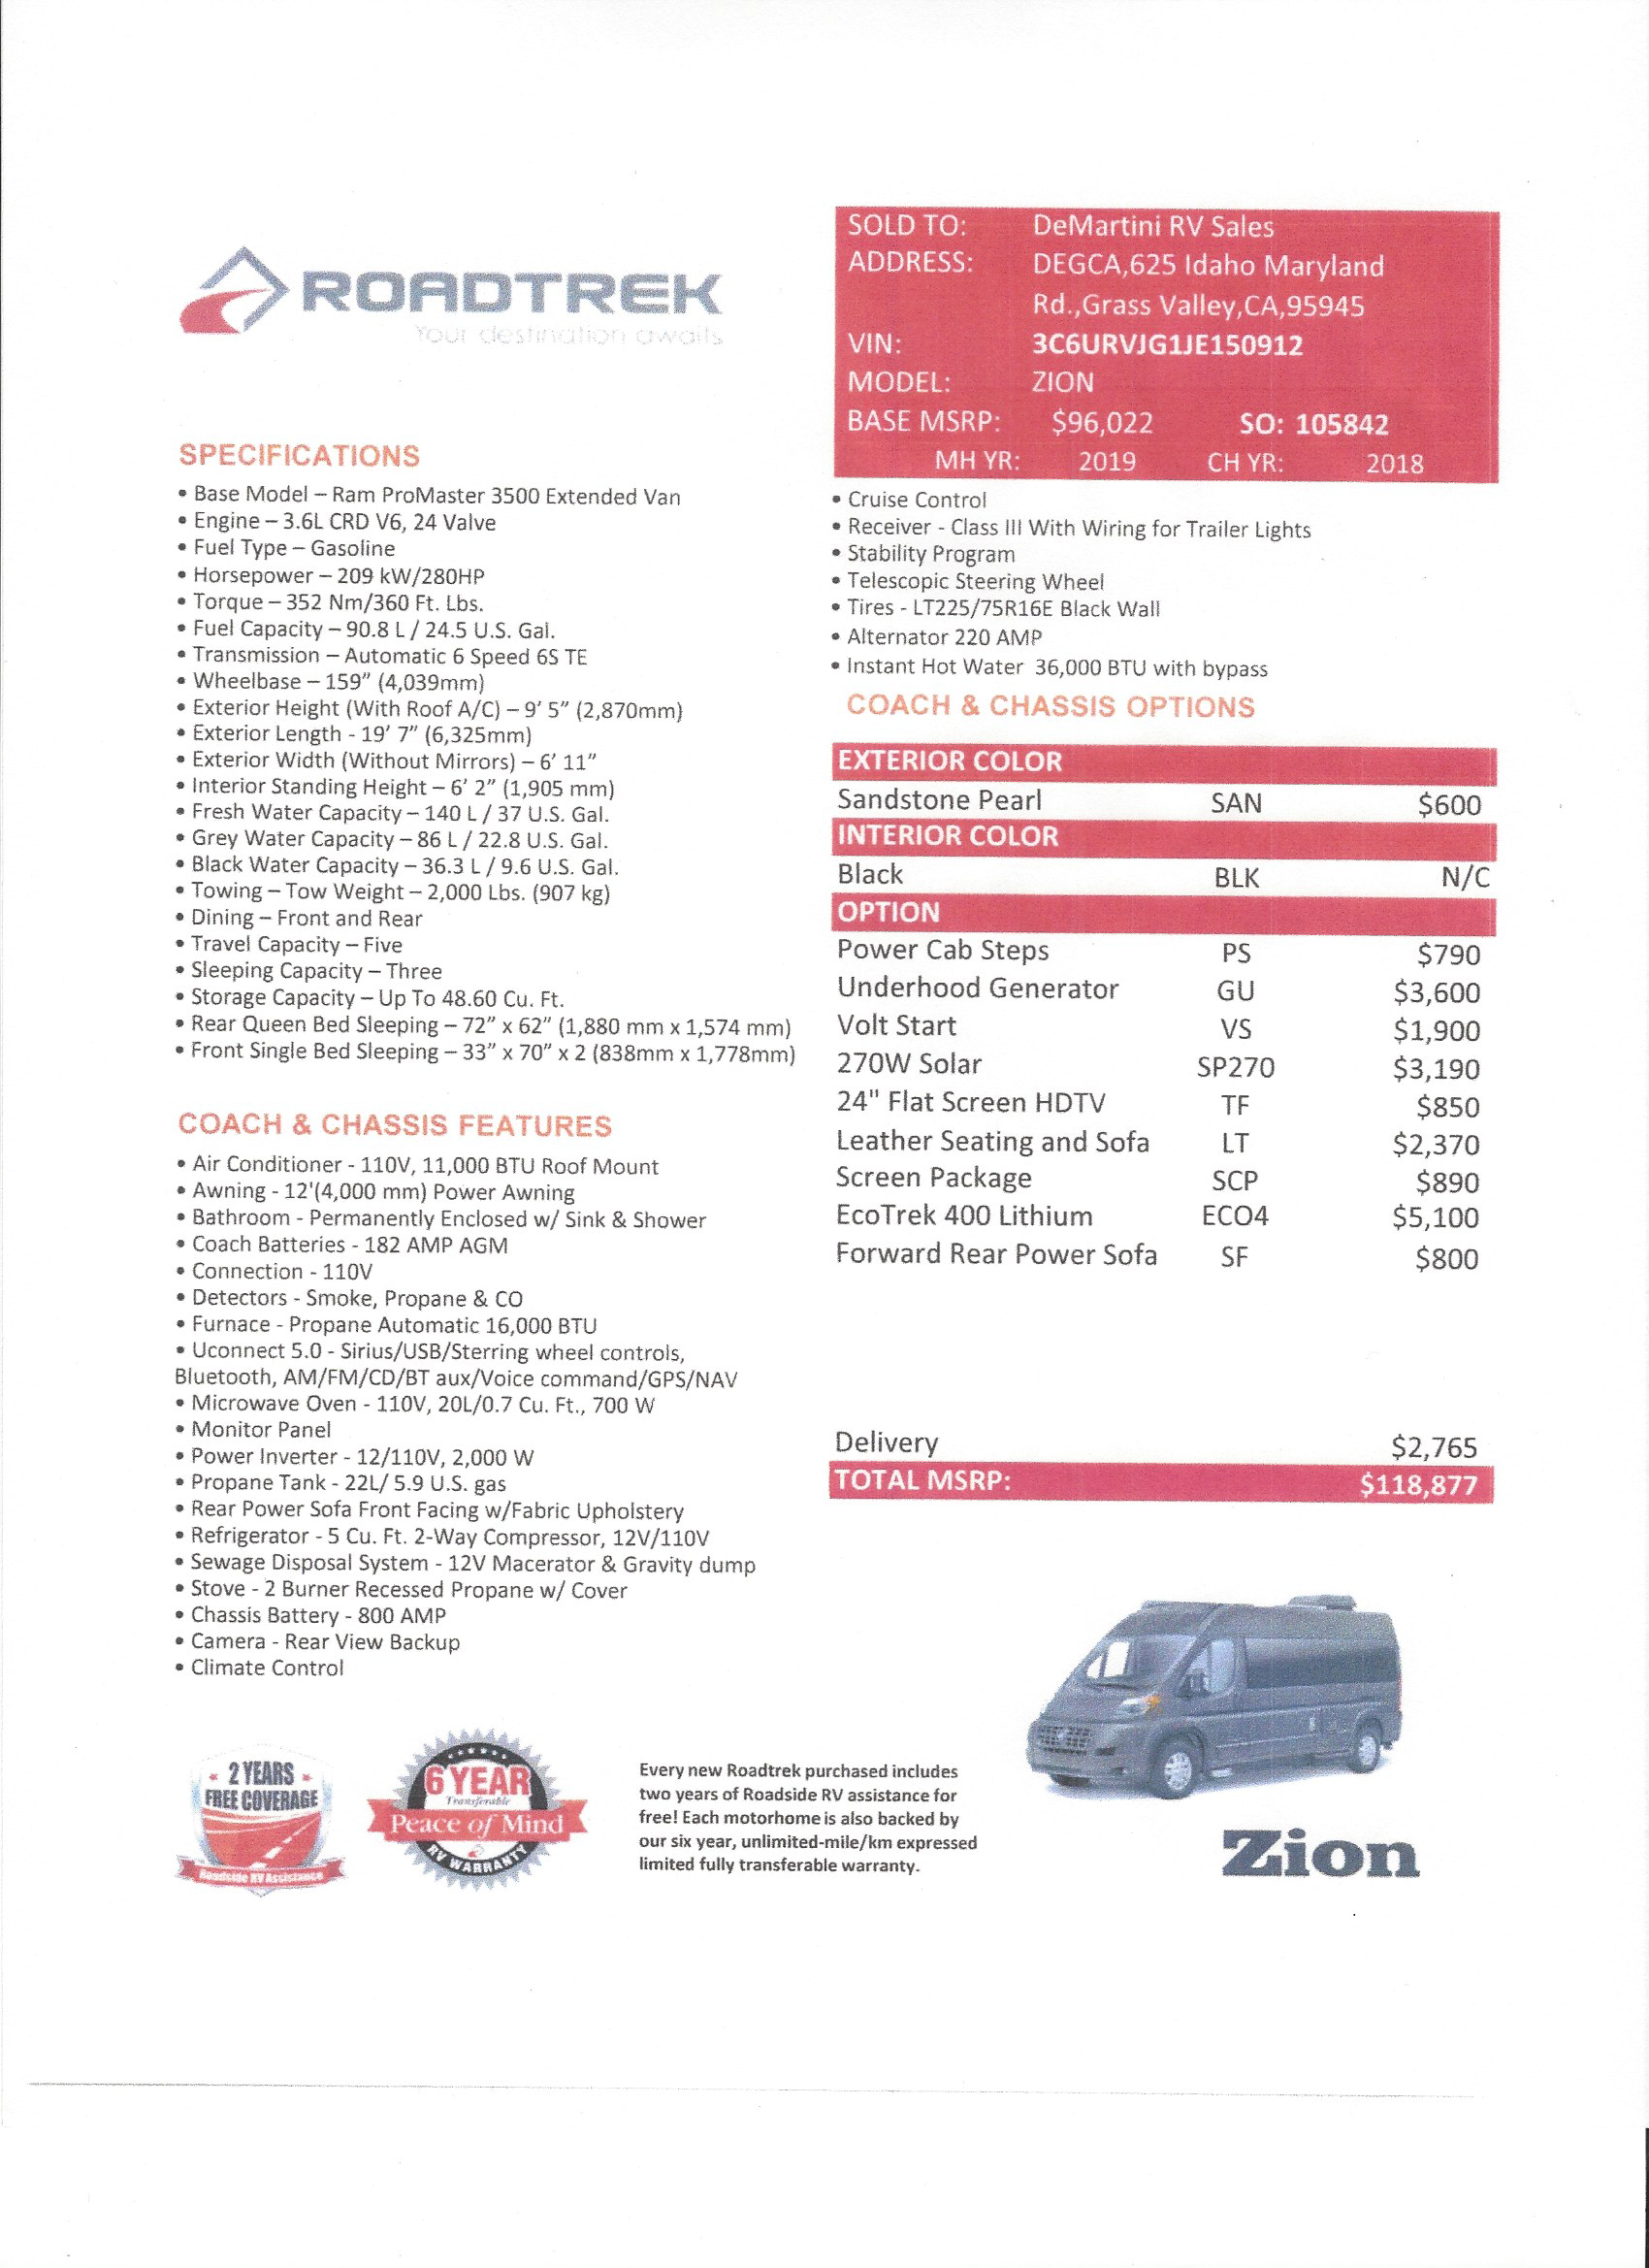 2019 Roadtrek Zion MSRP Sheet